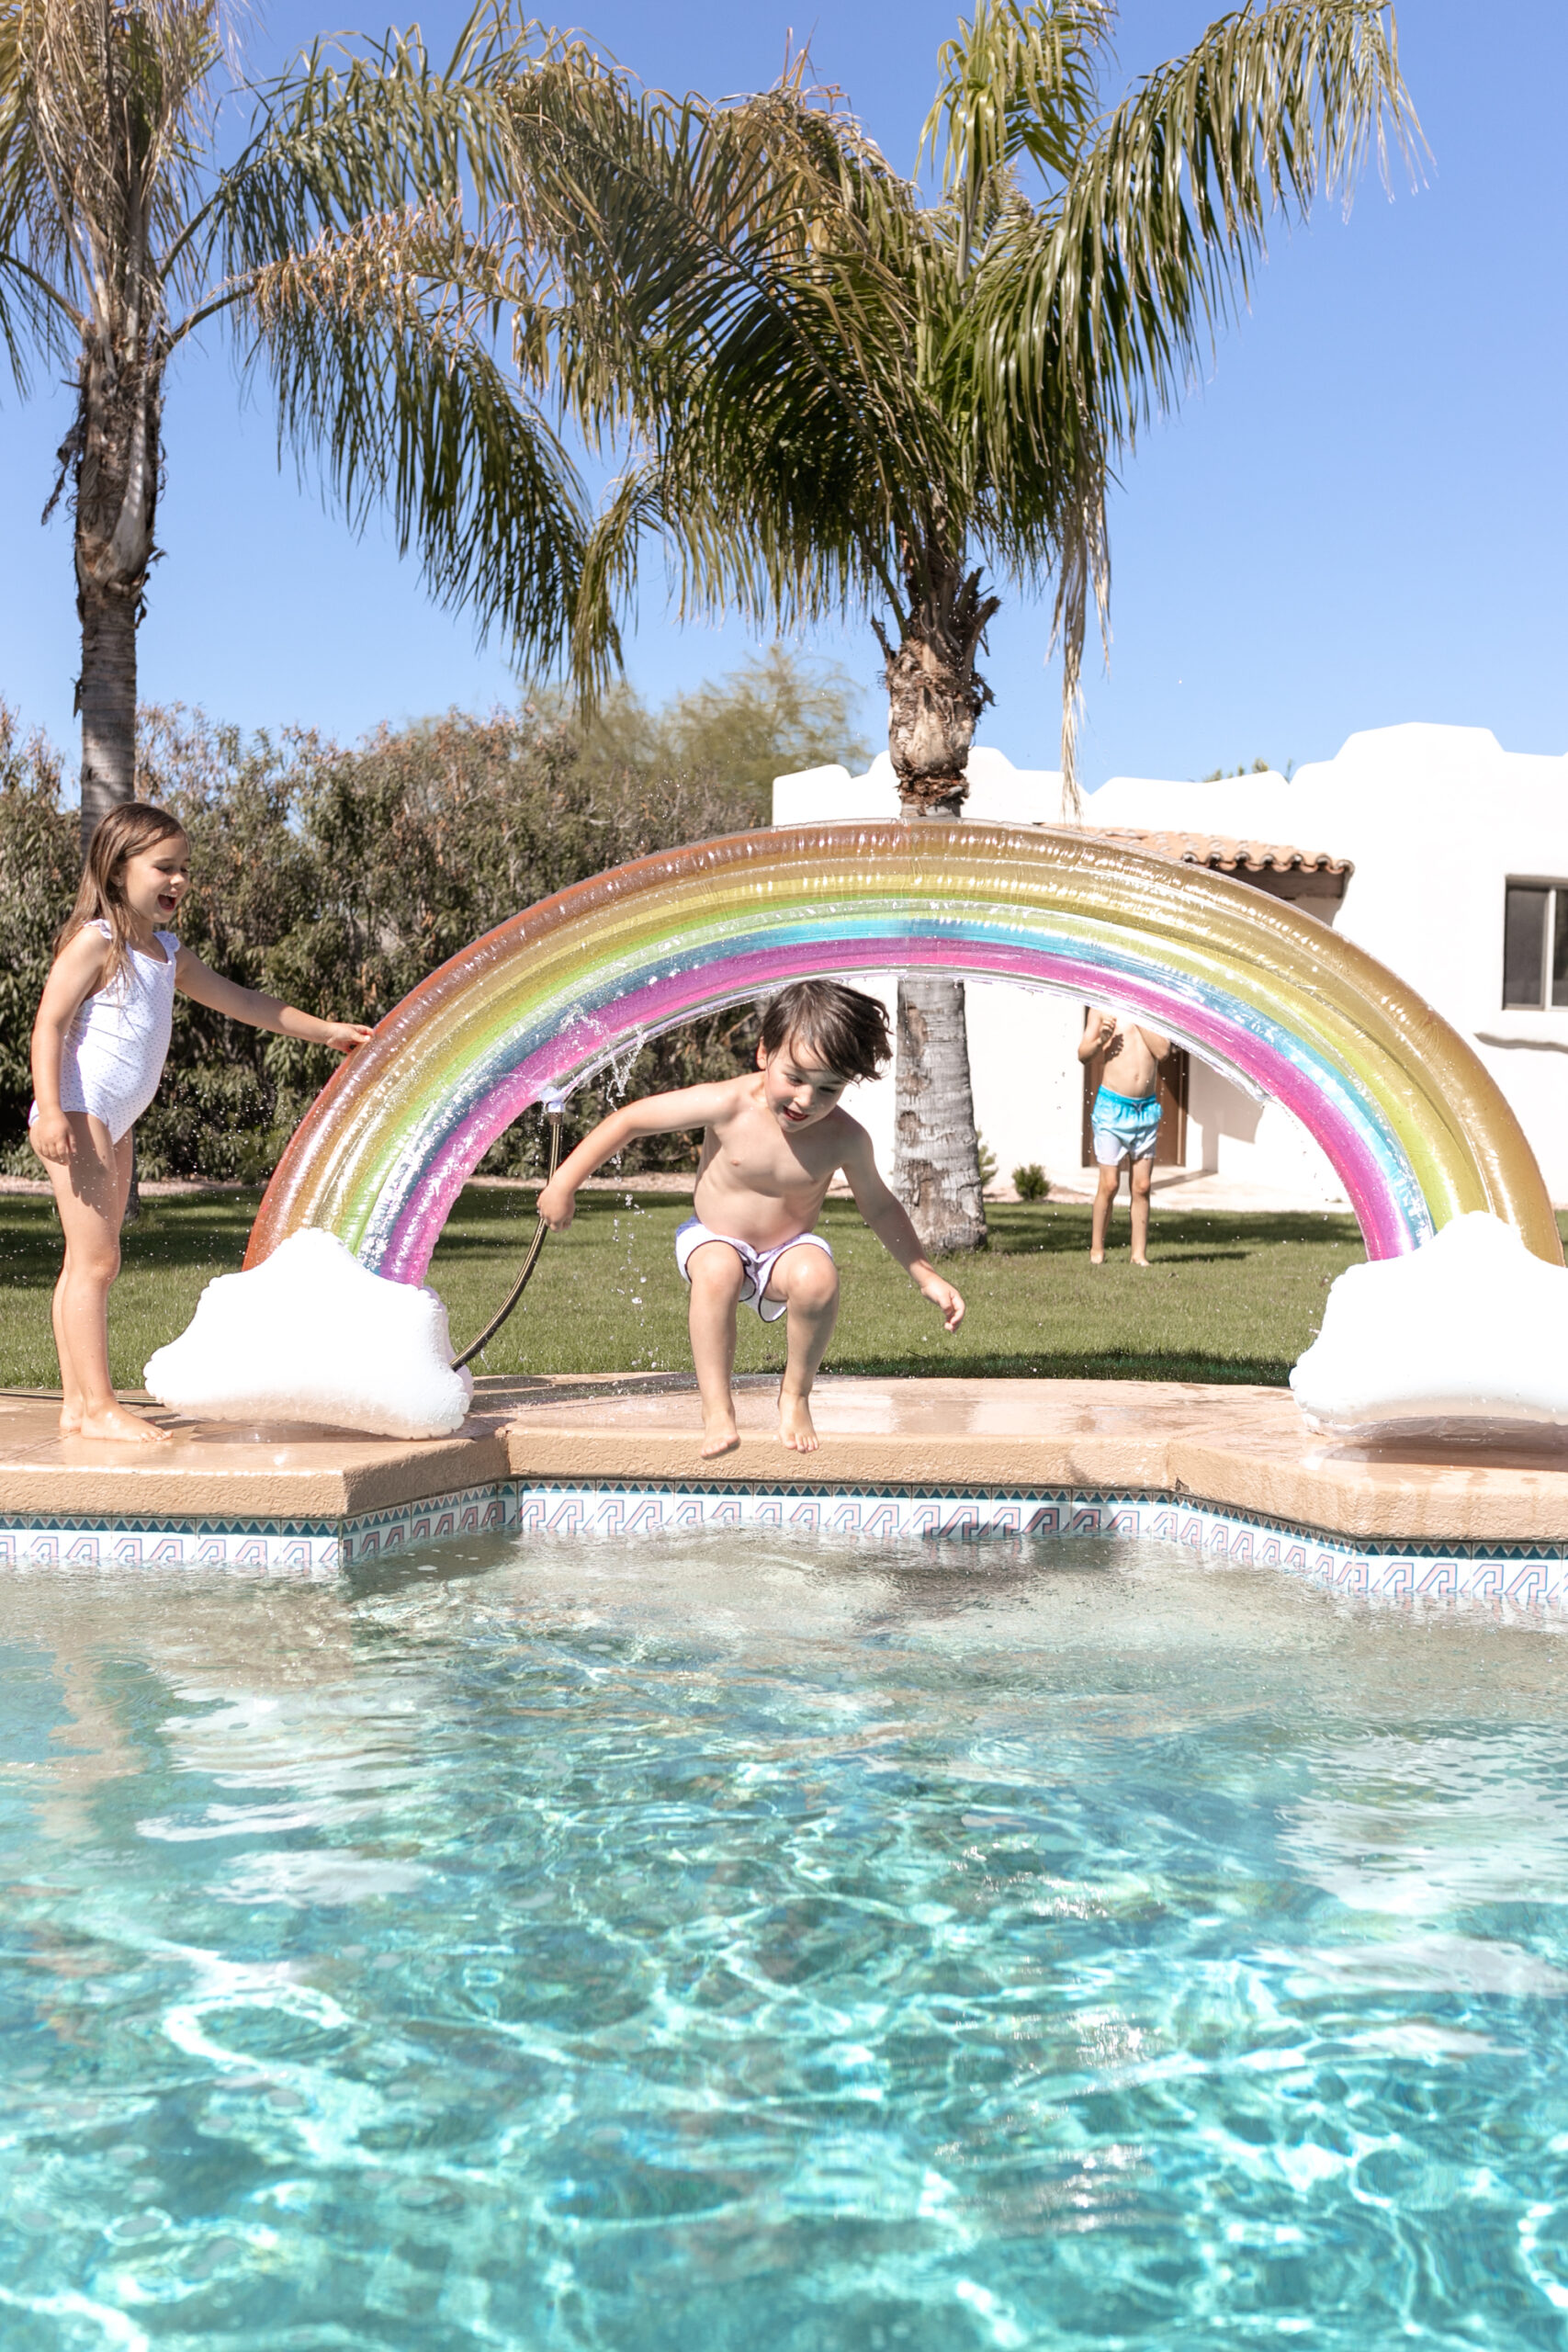 backyard pool time with our inflatable rainbow sprinkler. #backyardfun #childhood #summertime